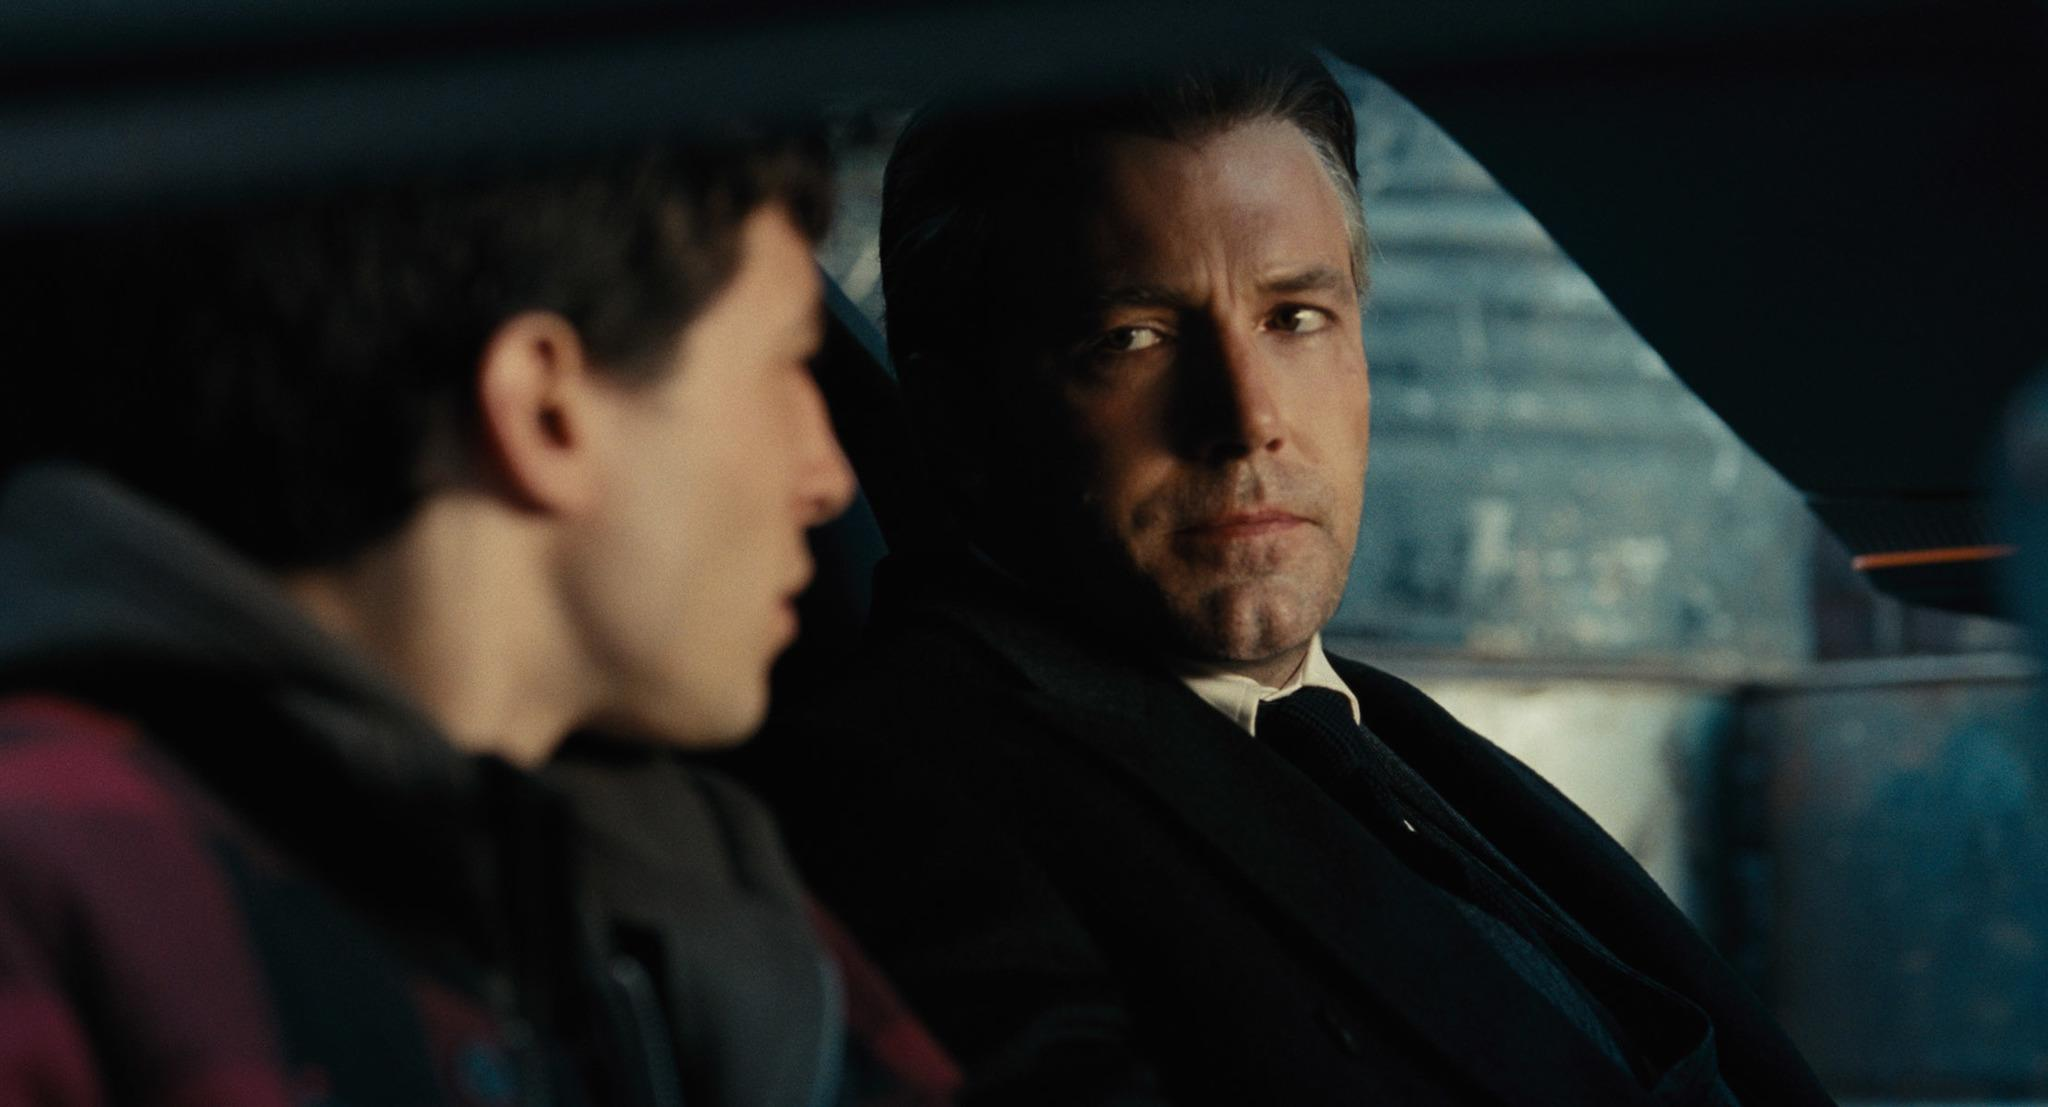 Bruce Wayne (Ben Affleck) talks to The Flash about helping them save the world